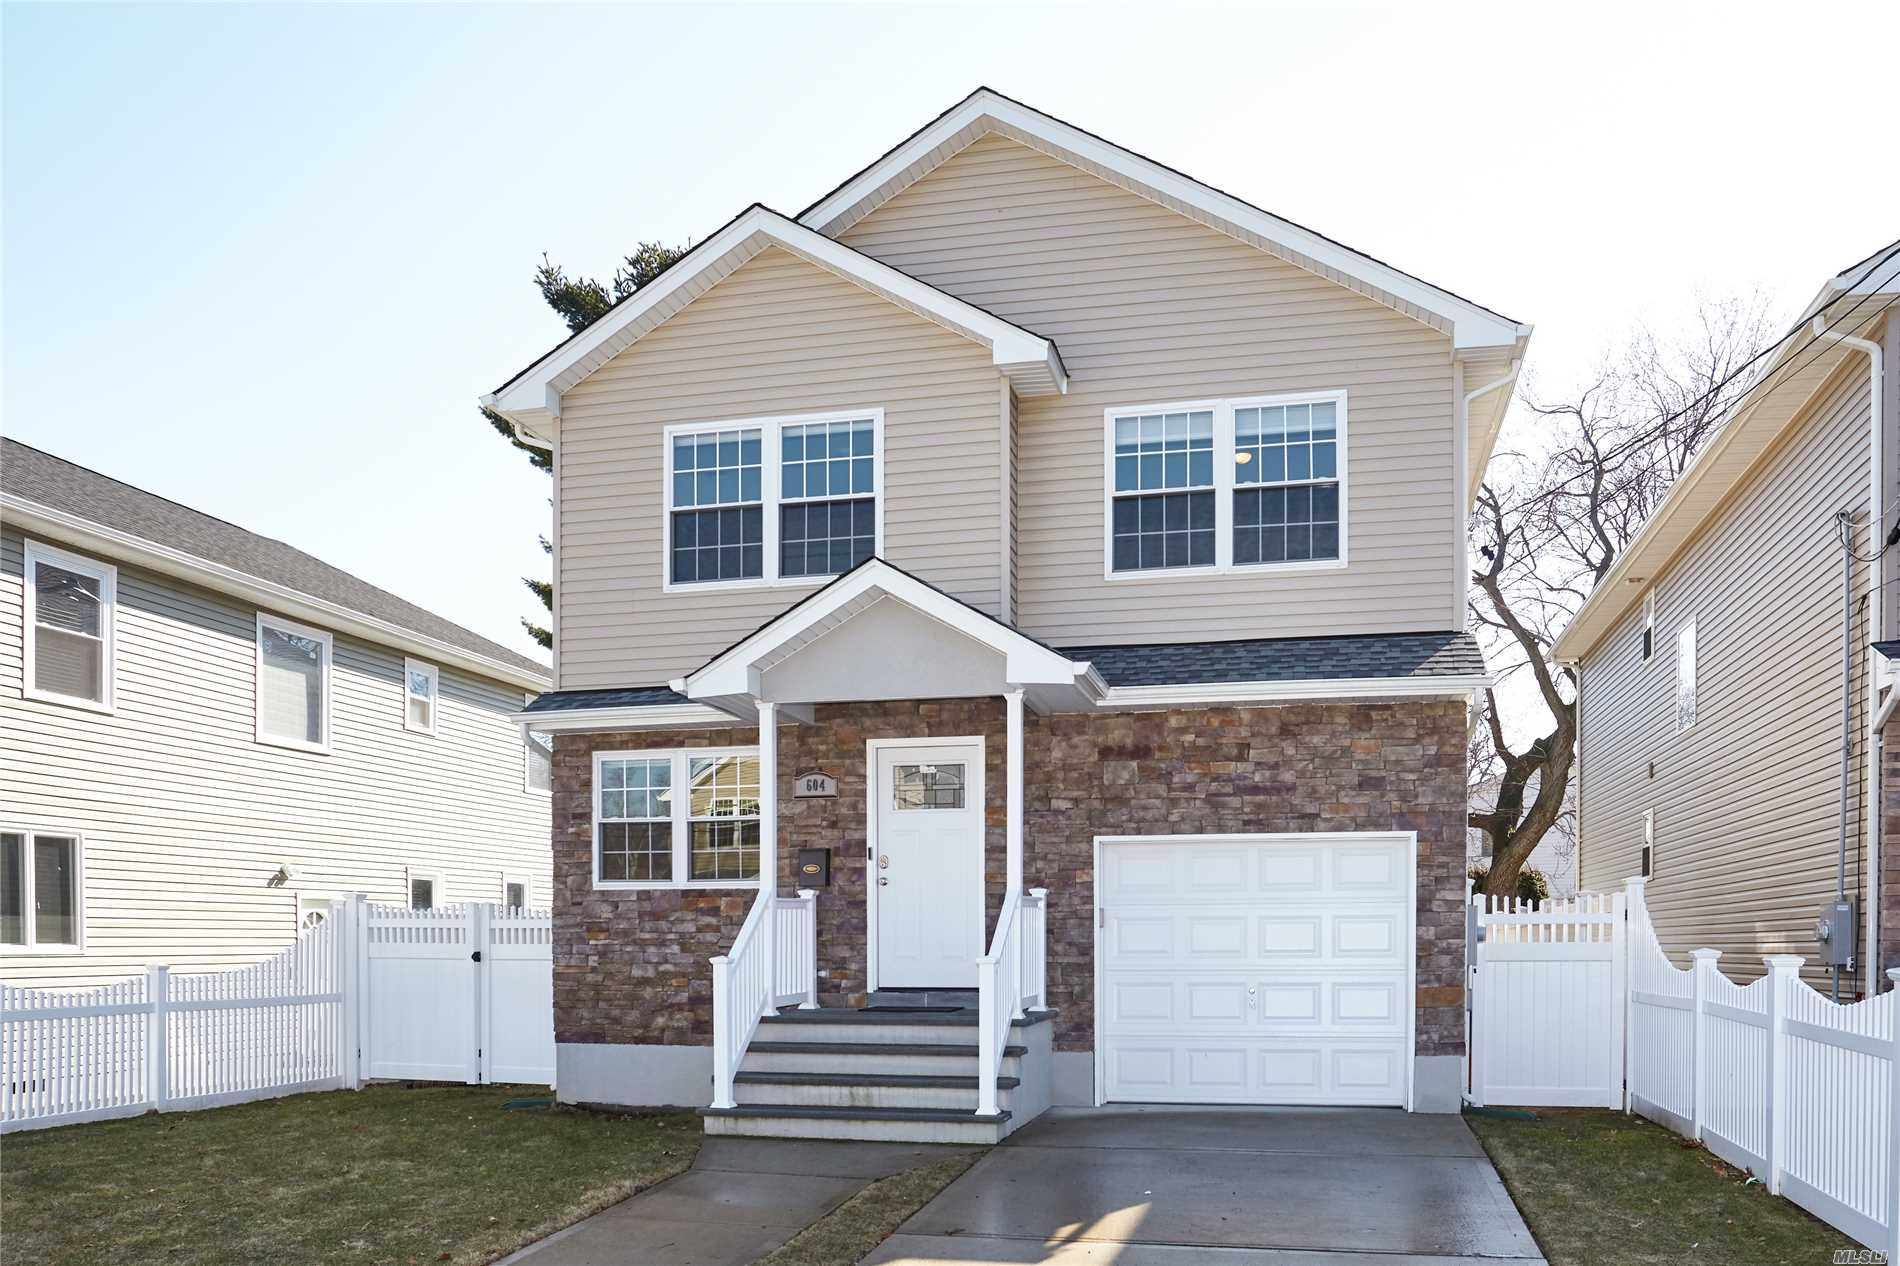 Awesome 3 Year New Home, Large Eat-In Kitchen W/ Huge Island, Stainless Steel Appliances, Granite Counter Top, Large Lr, Additional Den Rm W/ Built-In Wall Fireplace, Formal Dining Rm, Large Master Suite W/ Full Bath + Walk-In Clst, 3 Large Bdrms, Full Bath, Huge Full Finished Basement W/ Laundry Rm, Rec Rm, Built-In Wine Cooler, Large Backyard, Garage + So Much More!!!!